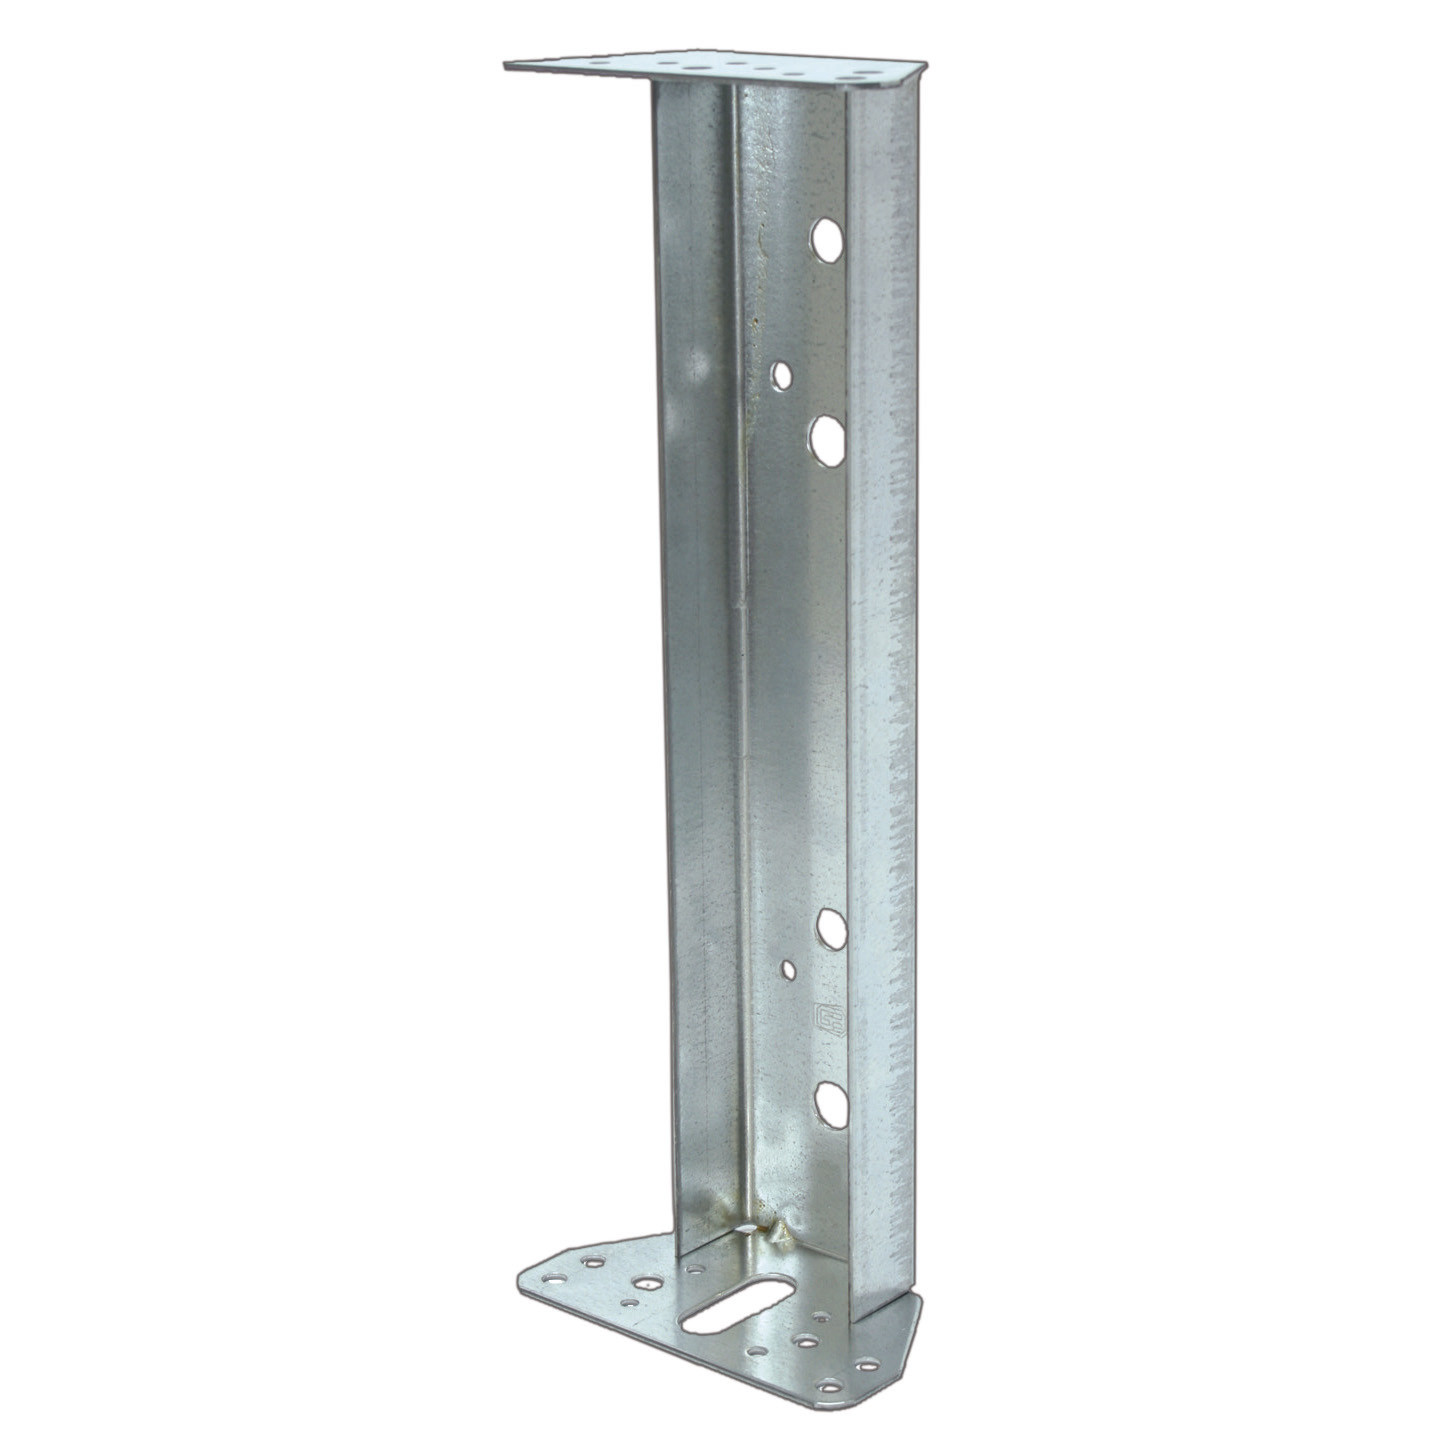 Window front frame support 60x70x340 115x2 304